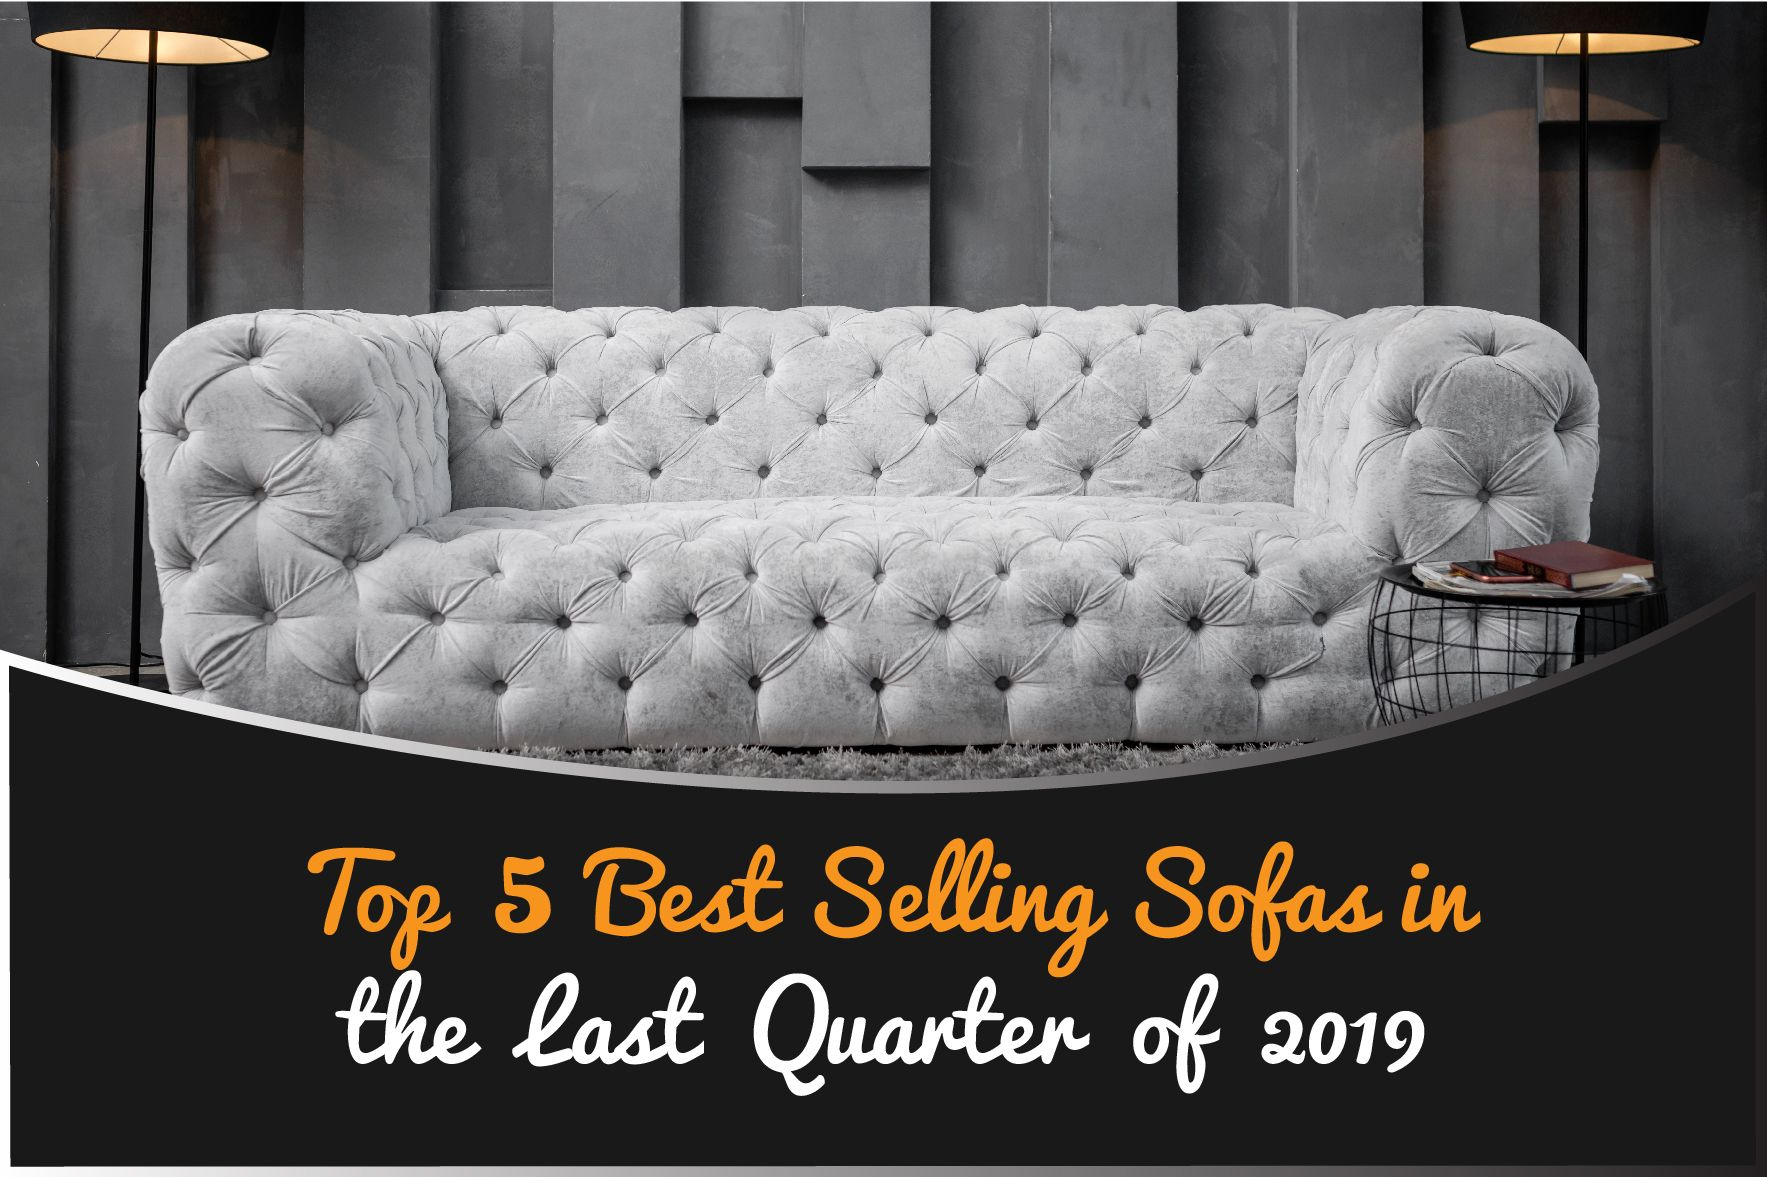 Top 5 Best Selling Sofas in the Last Quarter of 2019